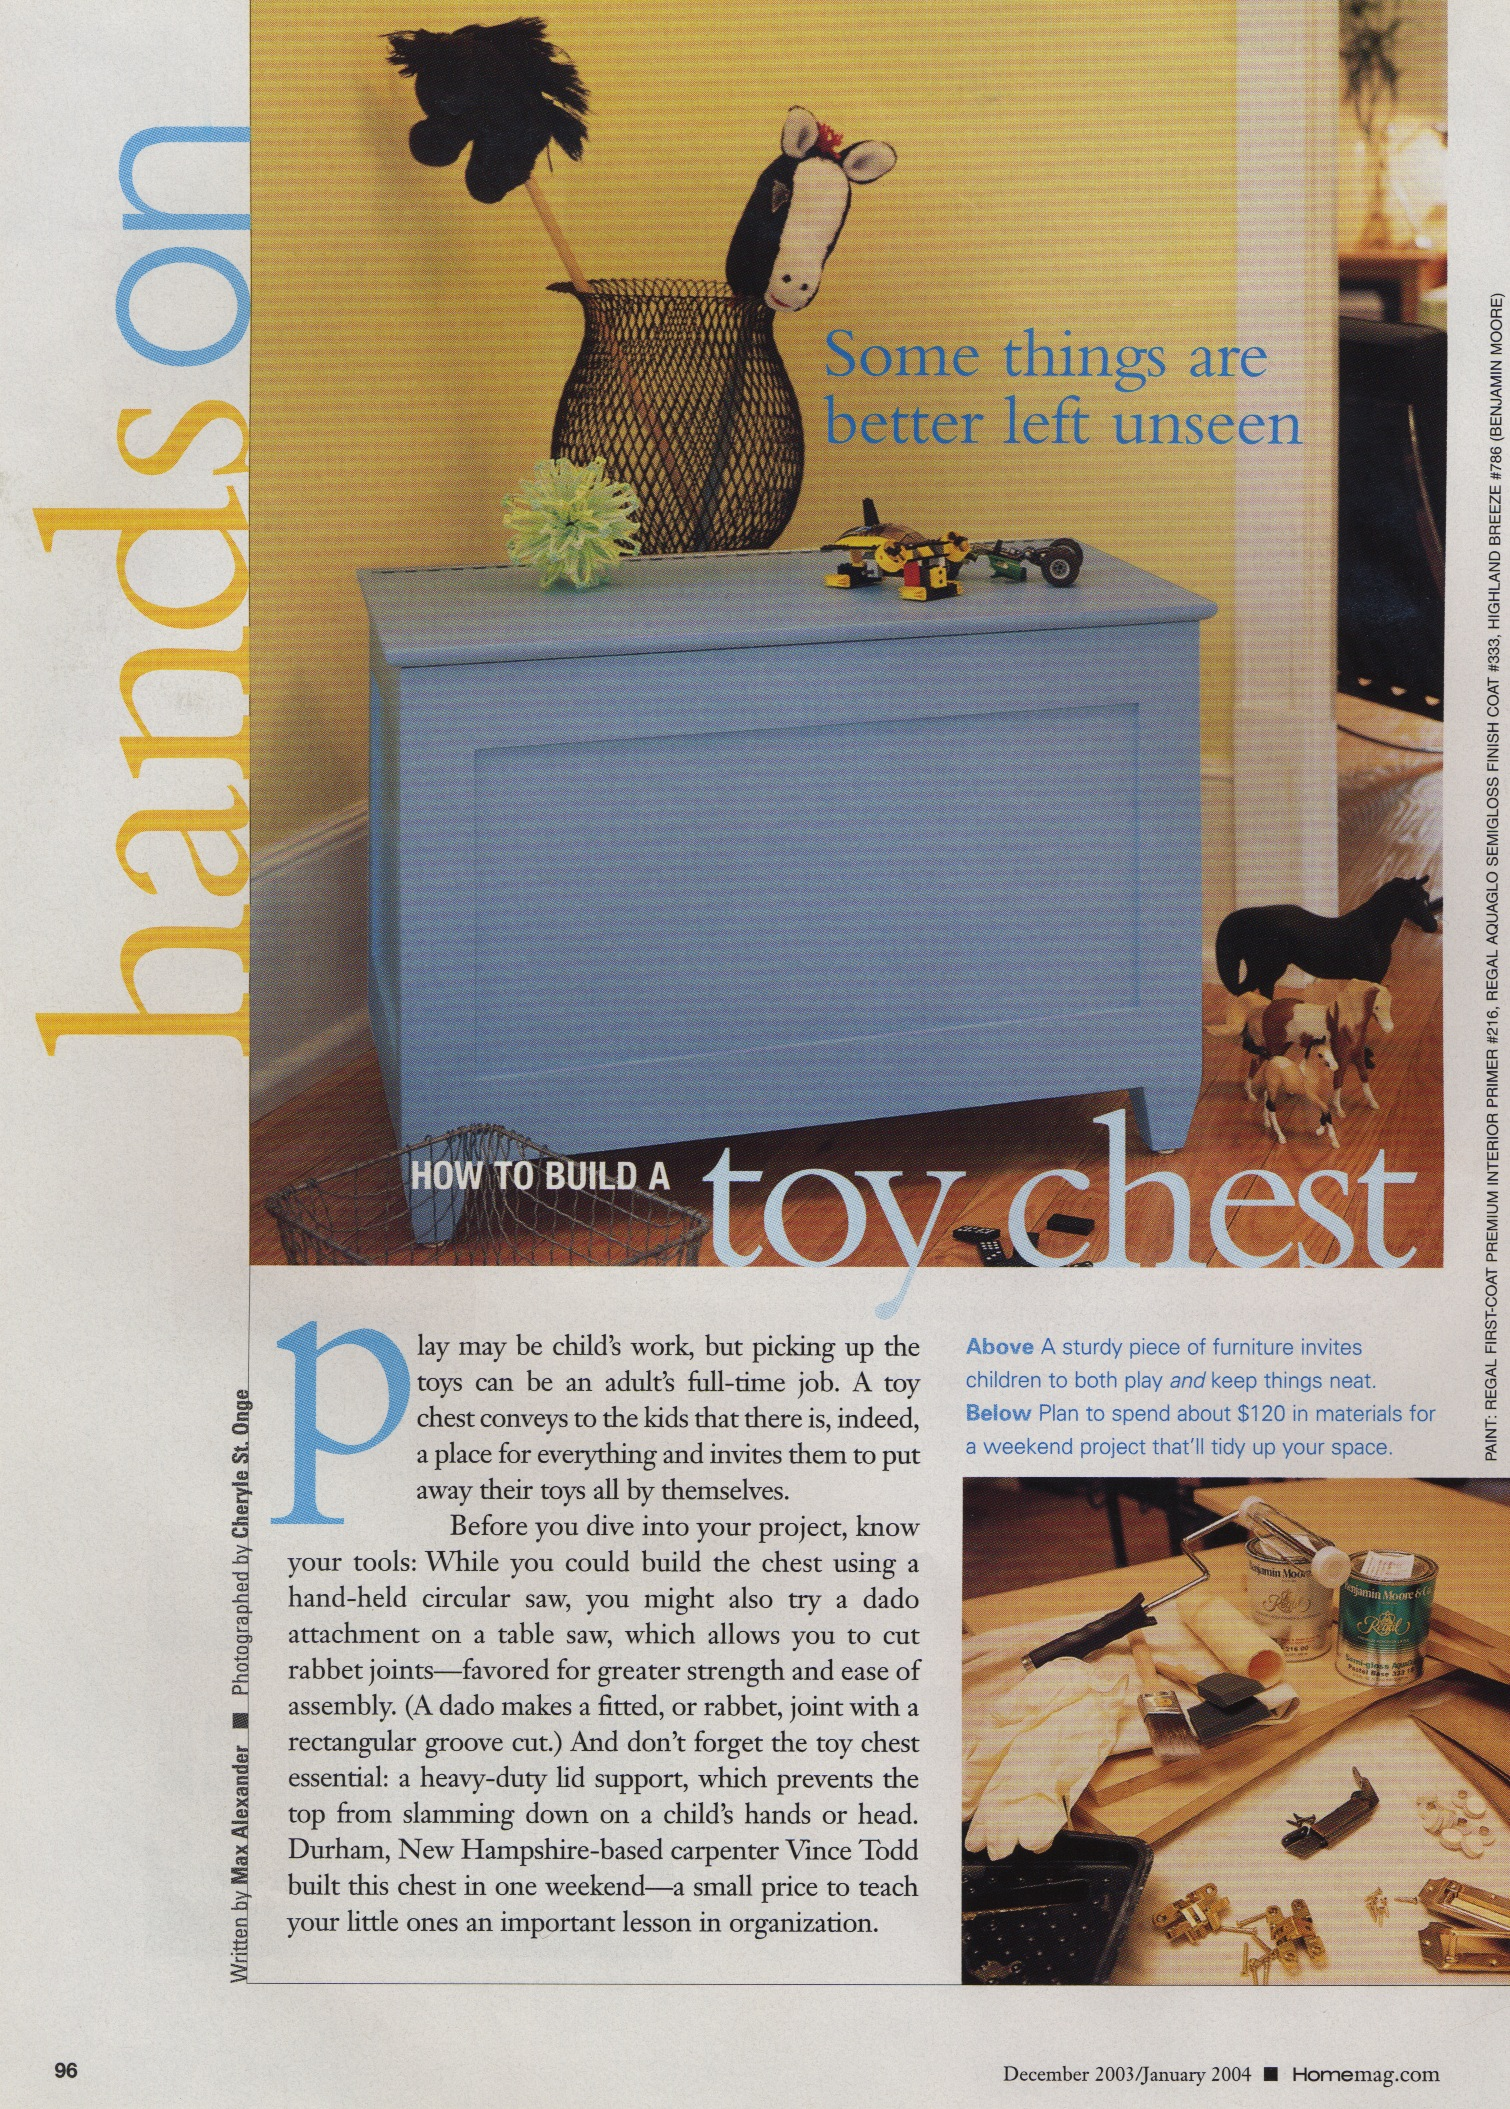 Home Magazine - Toy Chest - Story.jpg